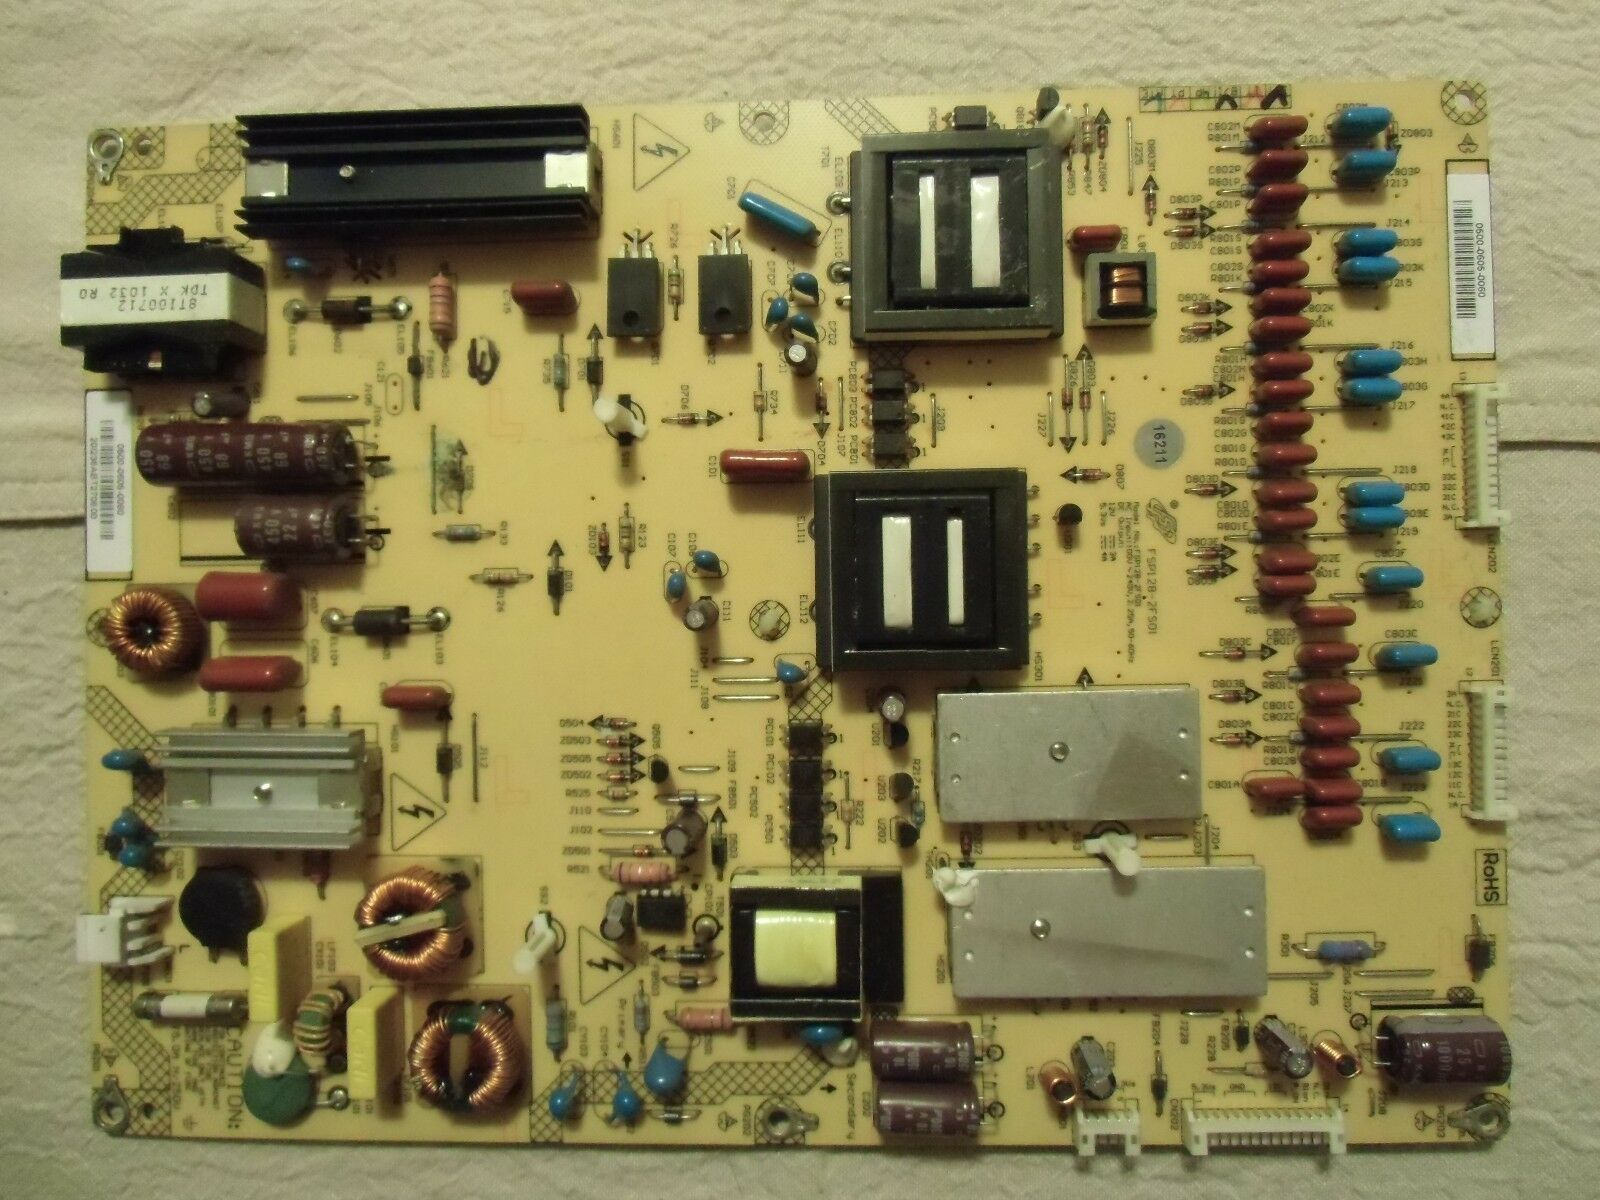 Primary image for Vizio M370NV Power Supply Board 0500-0605-0060 (FSP128-2FS01)